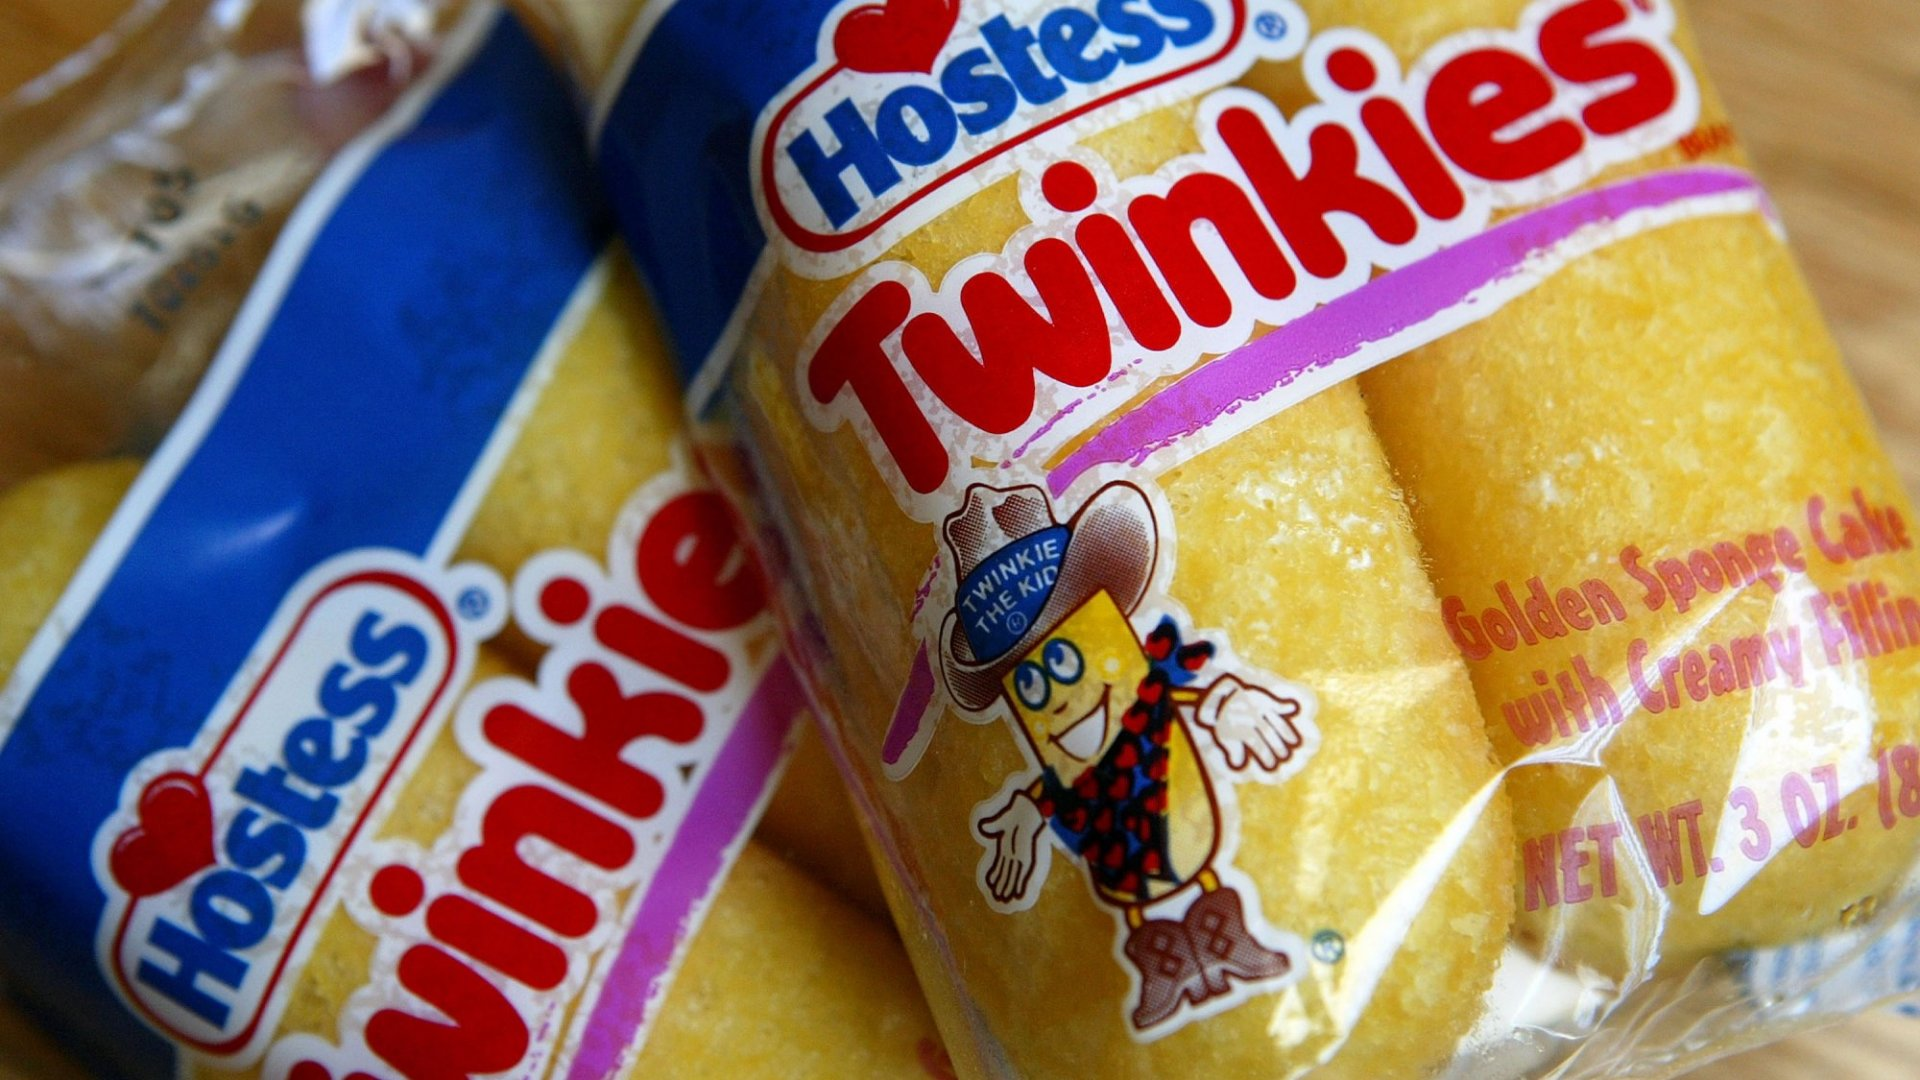 Try This Recipe for Better Communication: A Little Less Kale, A Lot More Twinkies